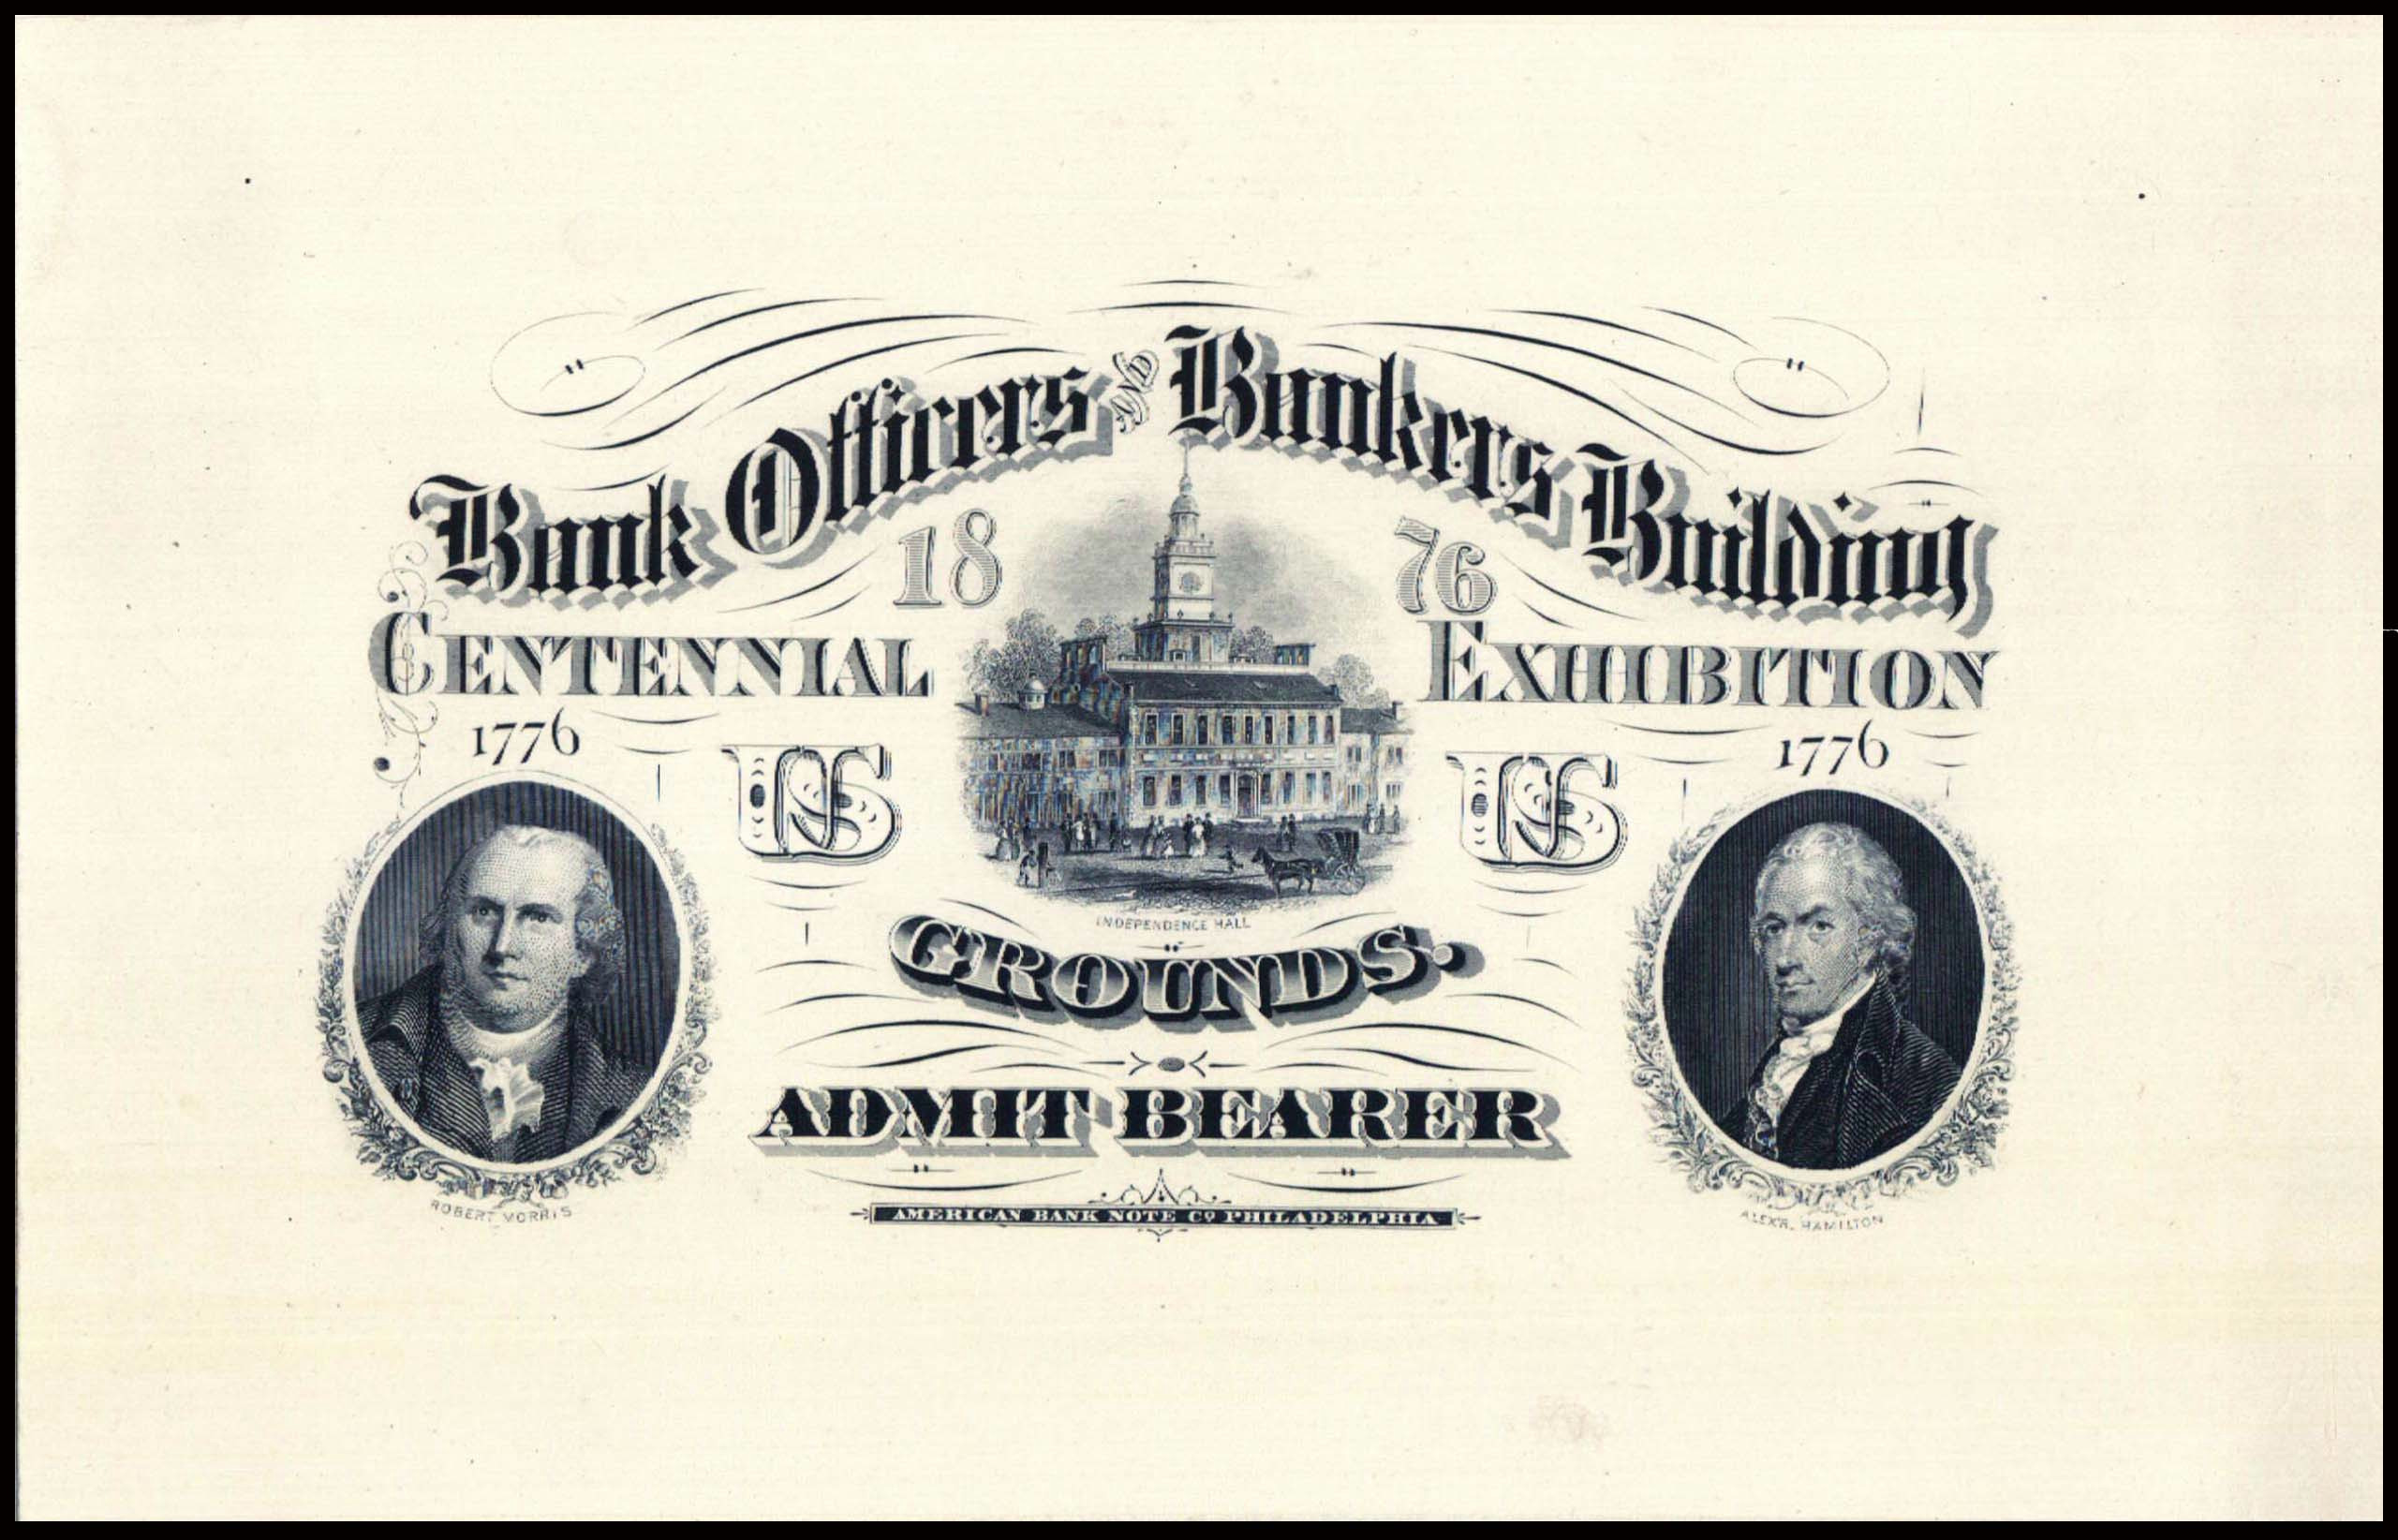 Bank Officers 1876 Centennial ticket.jpg